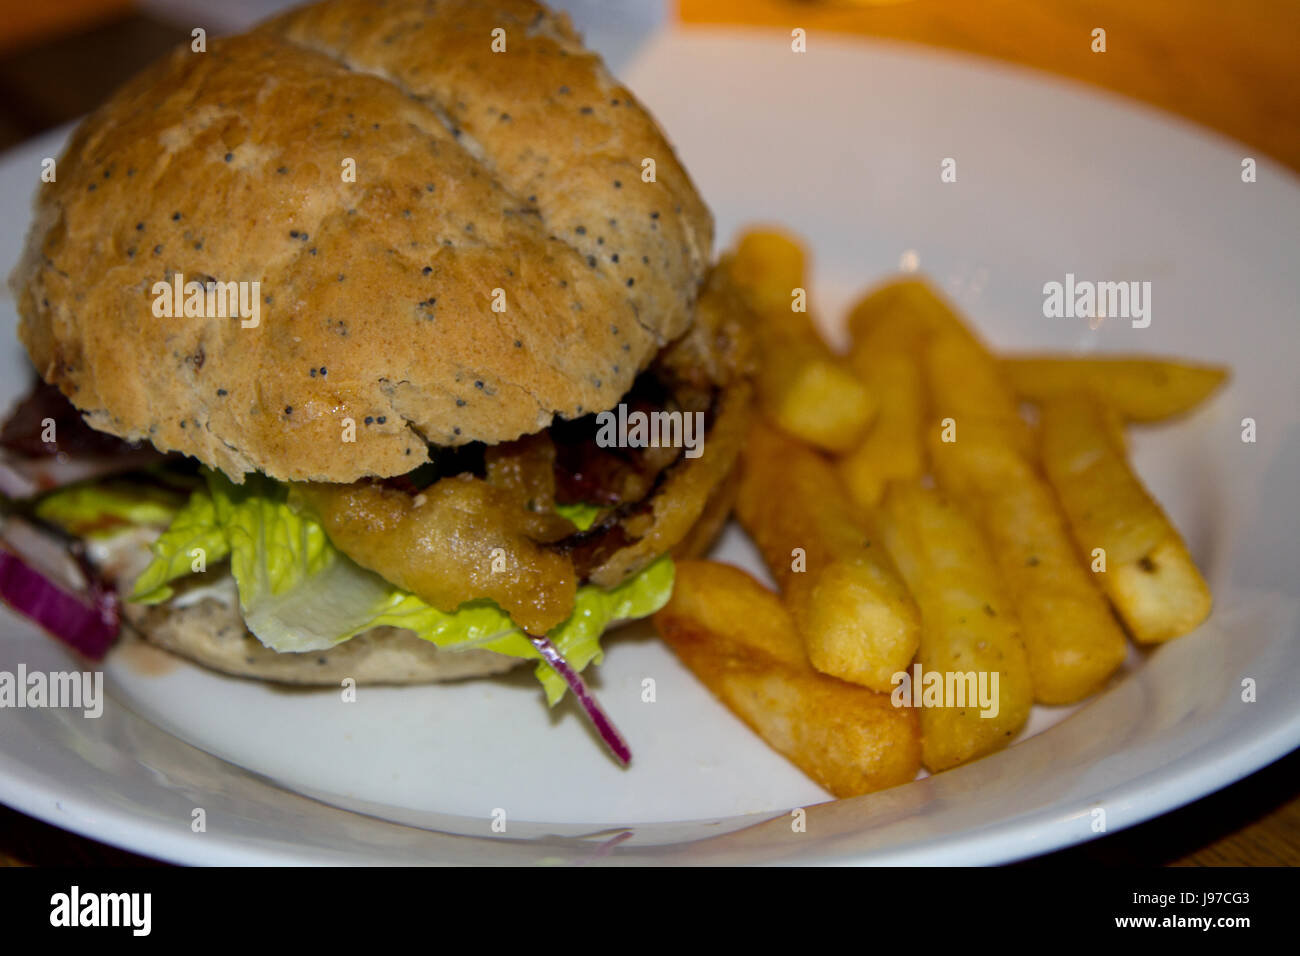 Burger and Chips on a plate - Stock Image